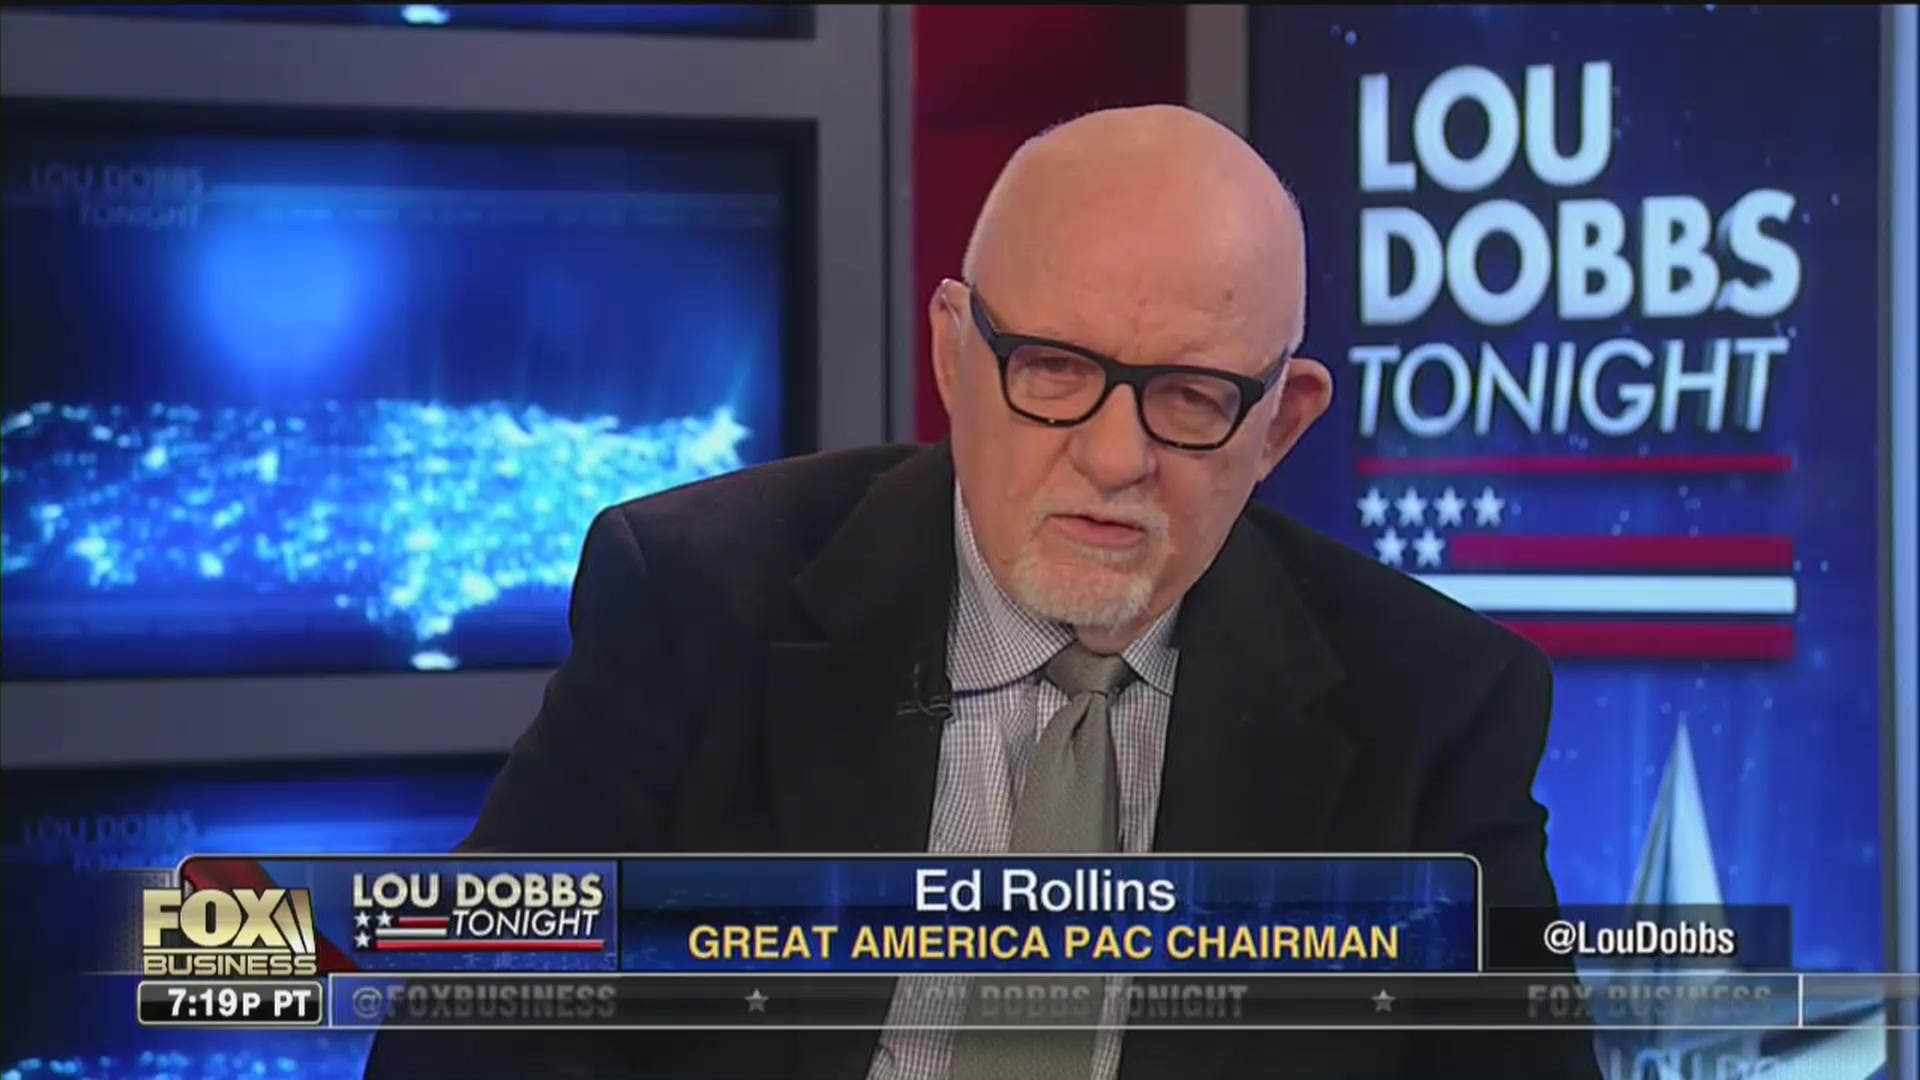 Alexandria Ocasio-Cortez Wrecks Ed Rollins For Calling Her 'The Little Girl'